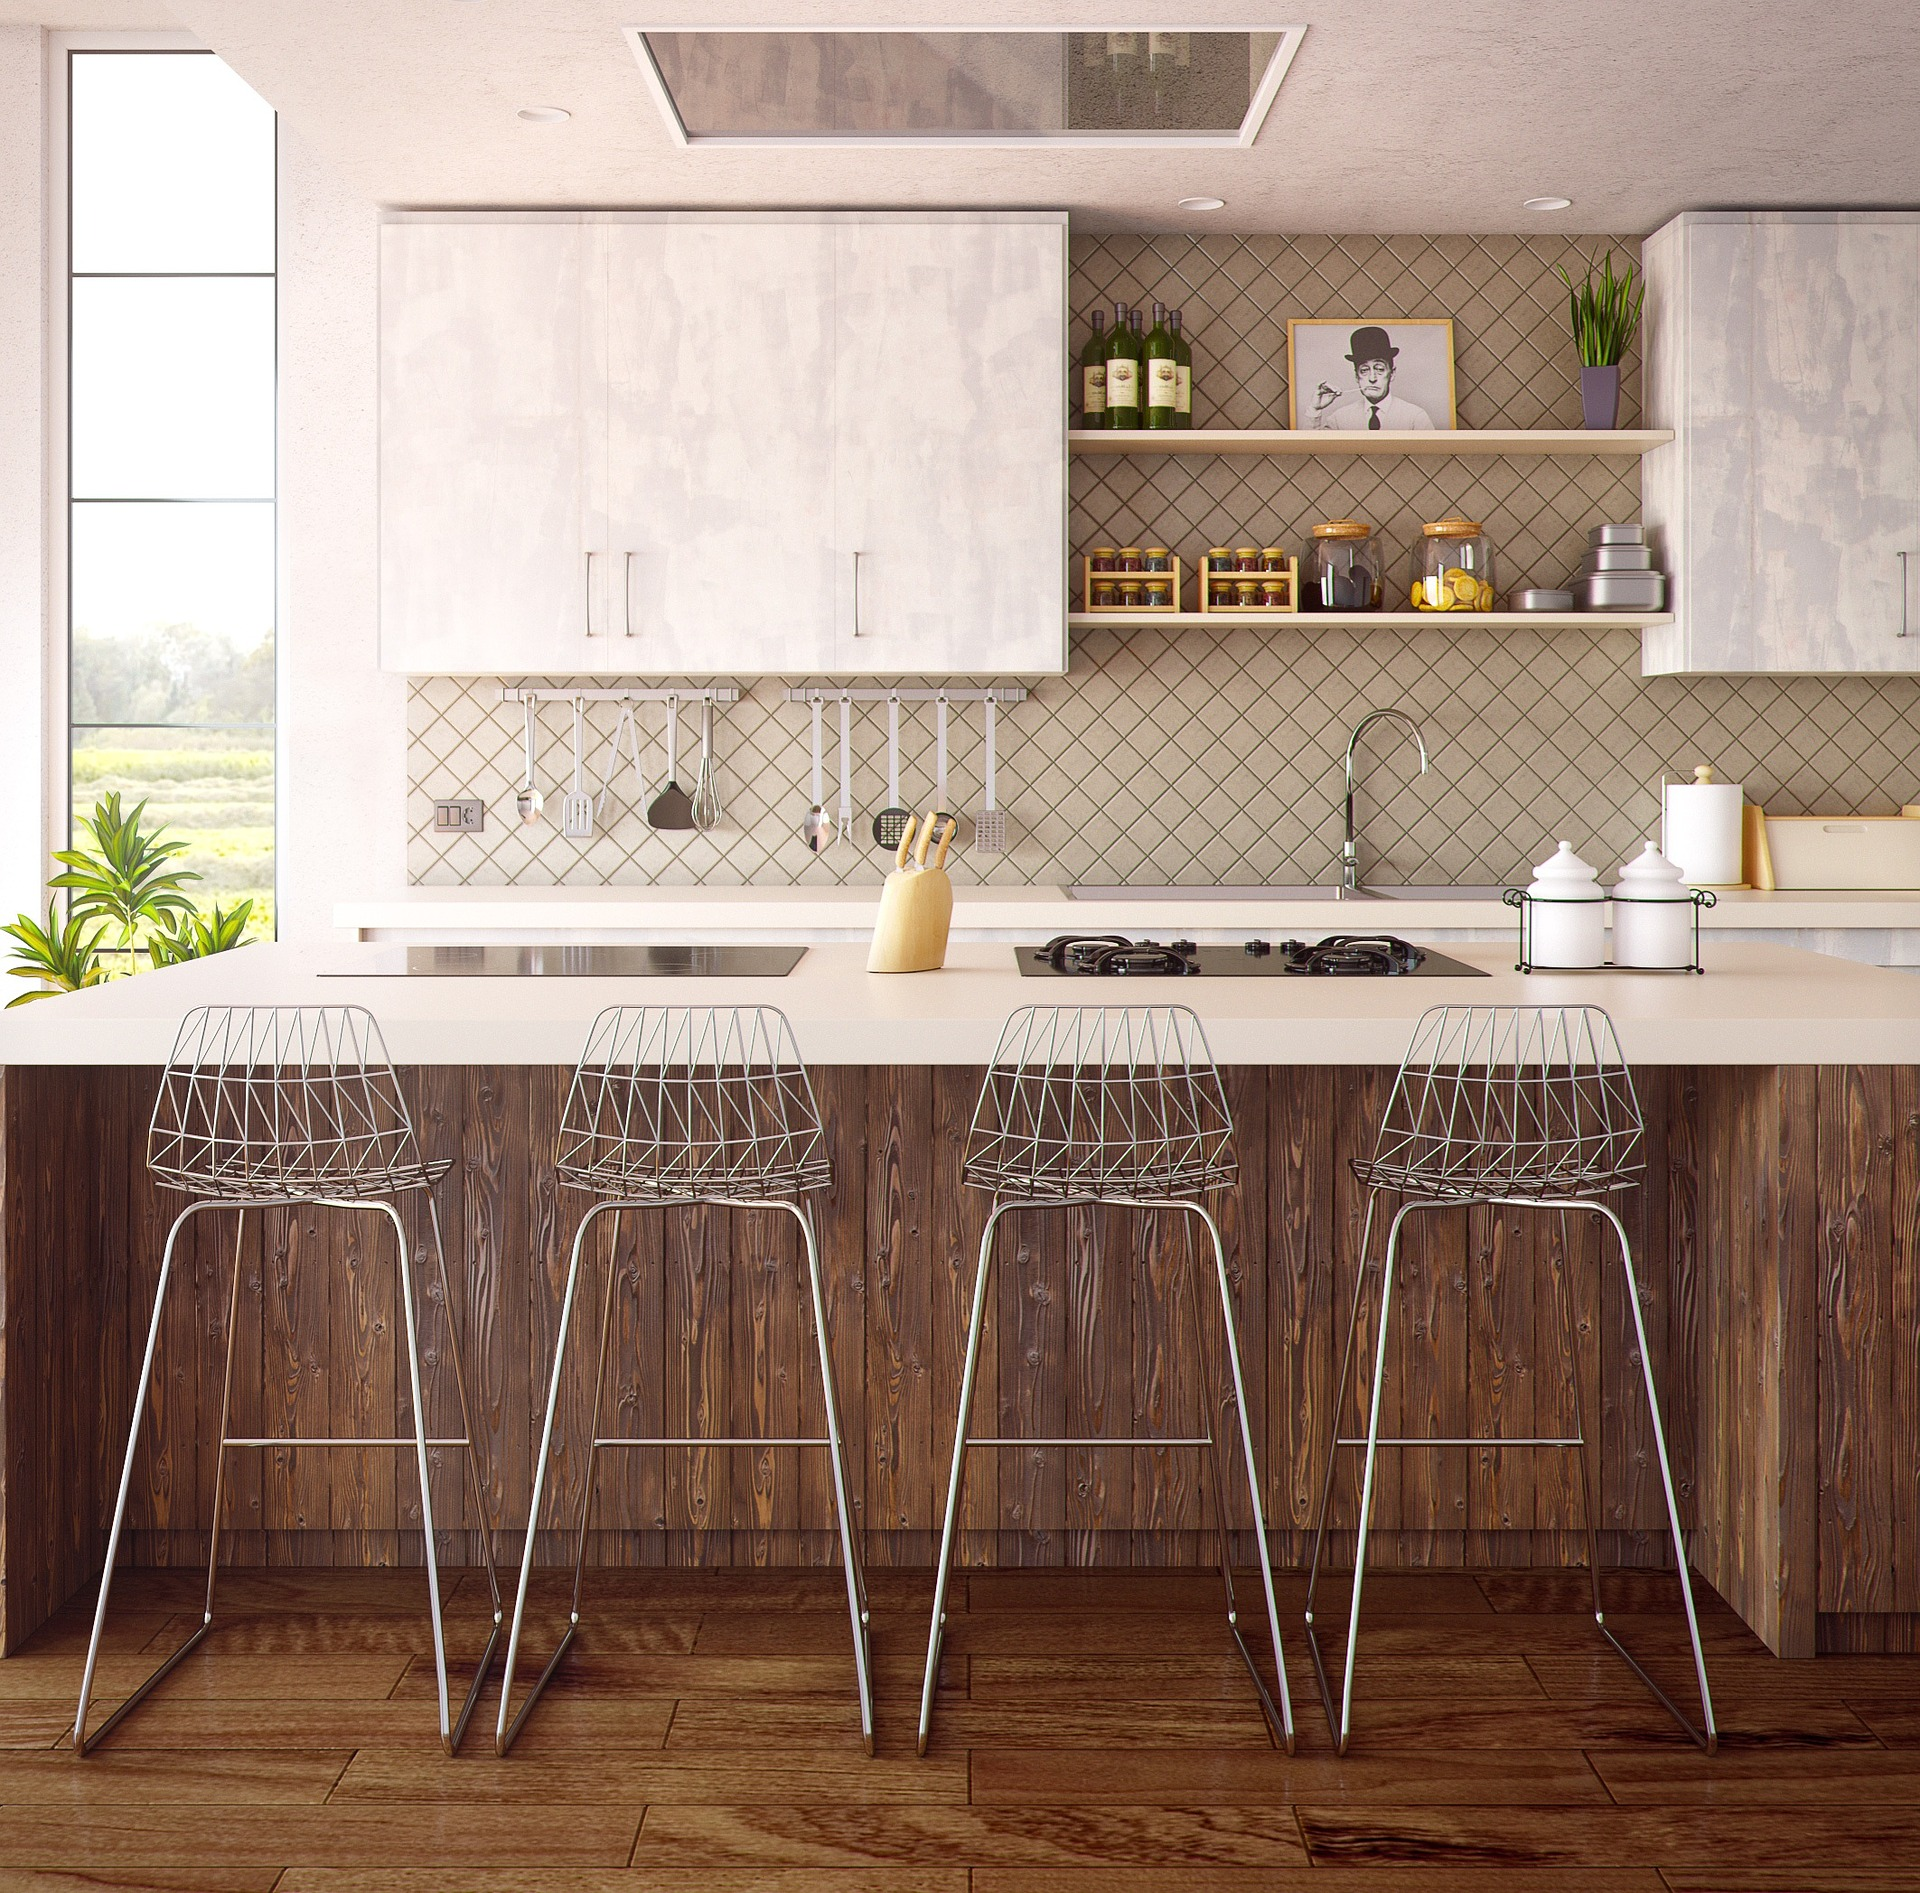 Cool Le Carrelage Mural Pour Vos Cuisines With Percer Carrelage Mural